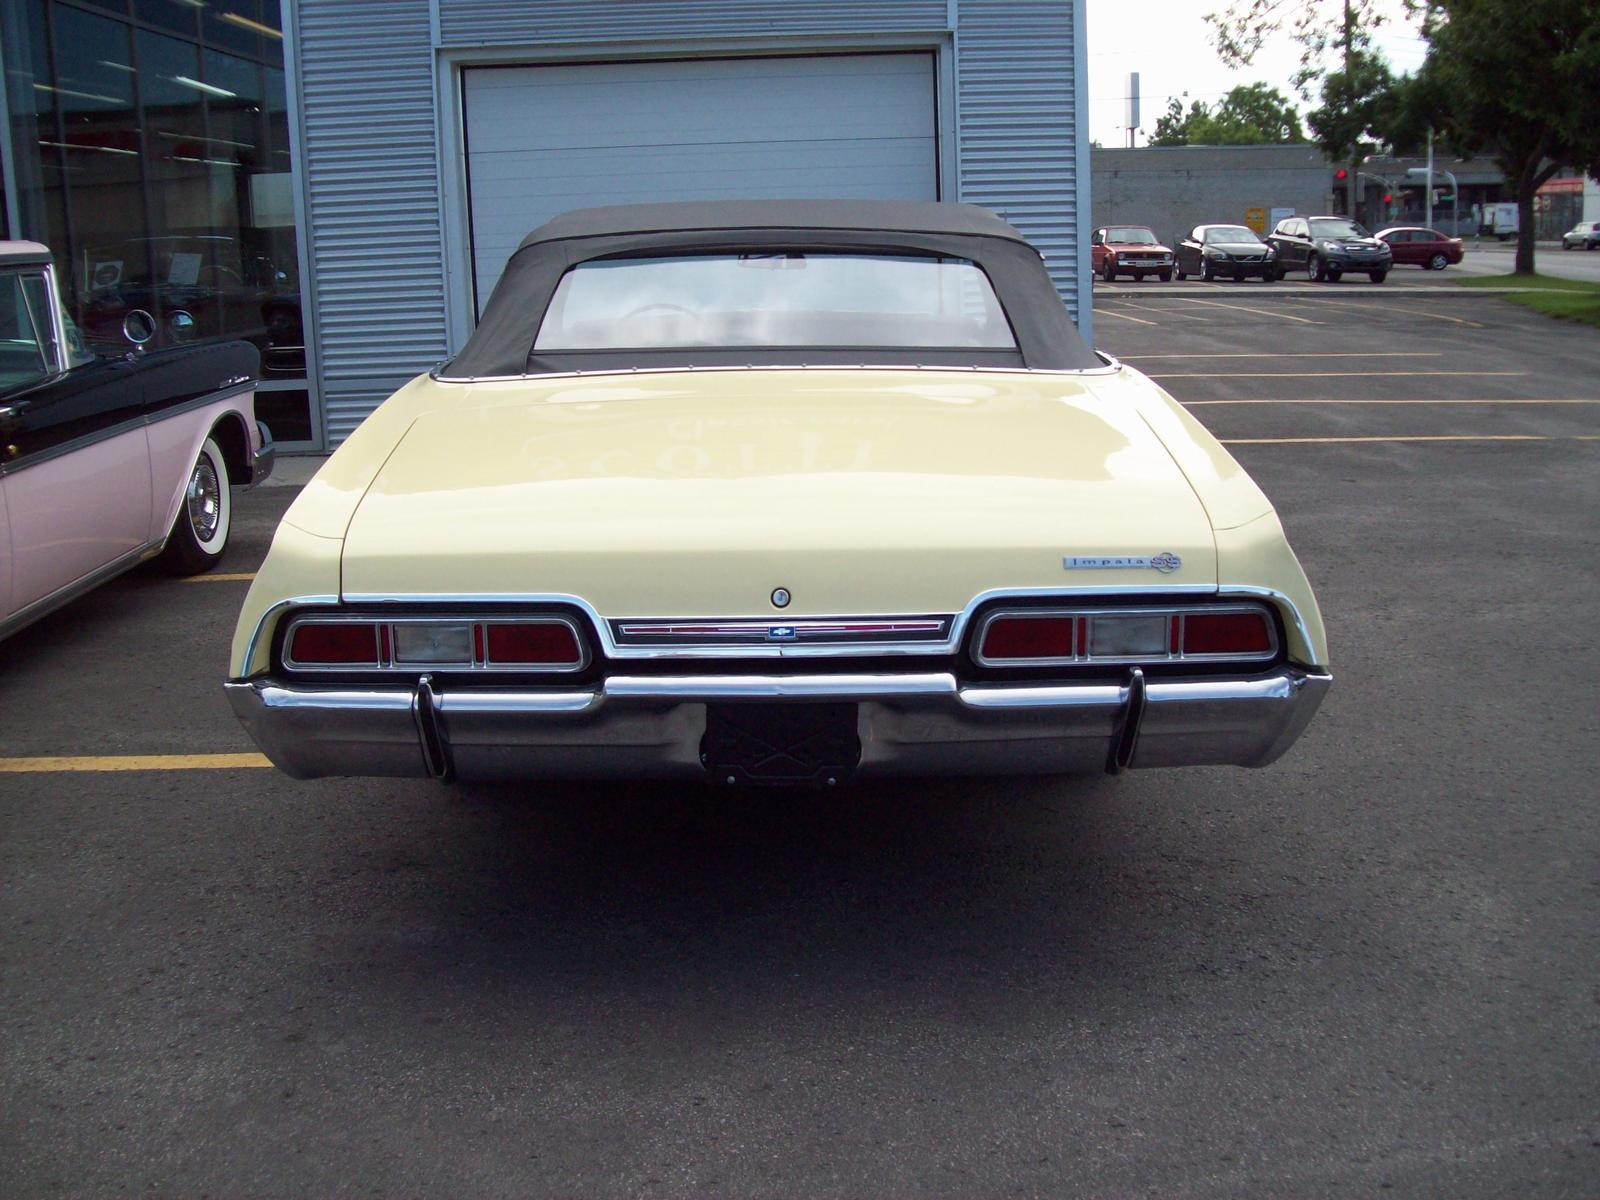 Used 1967 Chevrolet Impala Ss For Sale In Saint Léonard John